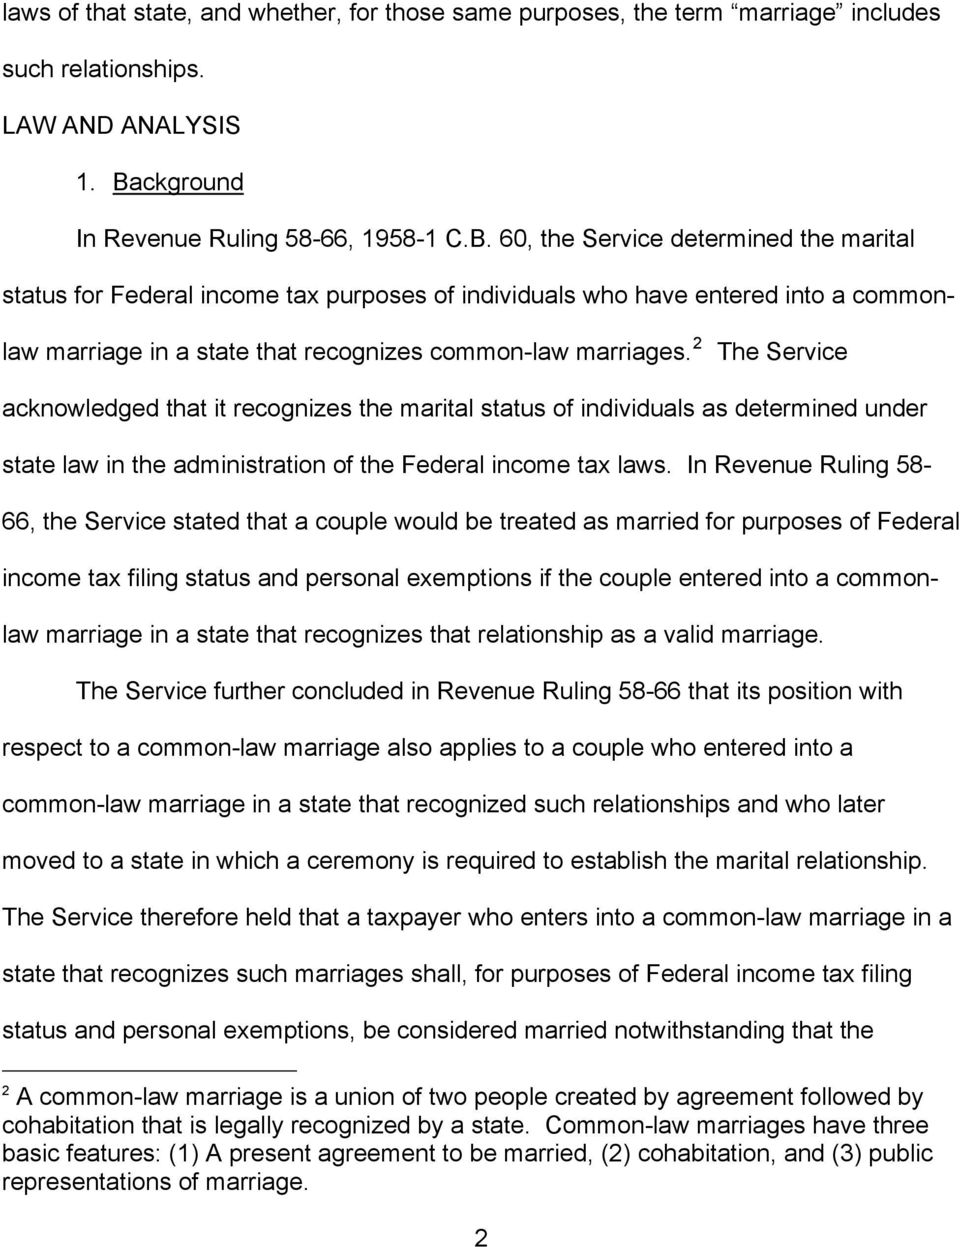 60, the Service determined the marital status for Federal income tax purposes of individuals who have entered into a commonlaw marriage in a state that recognizes common-law marriages.